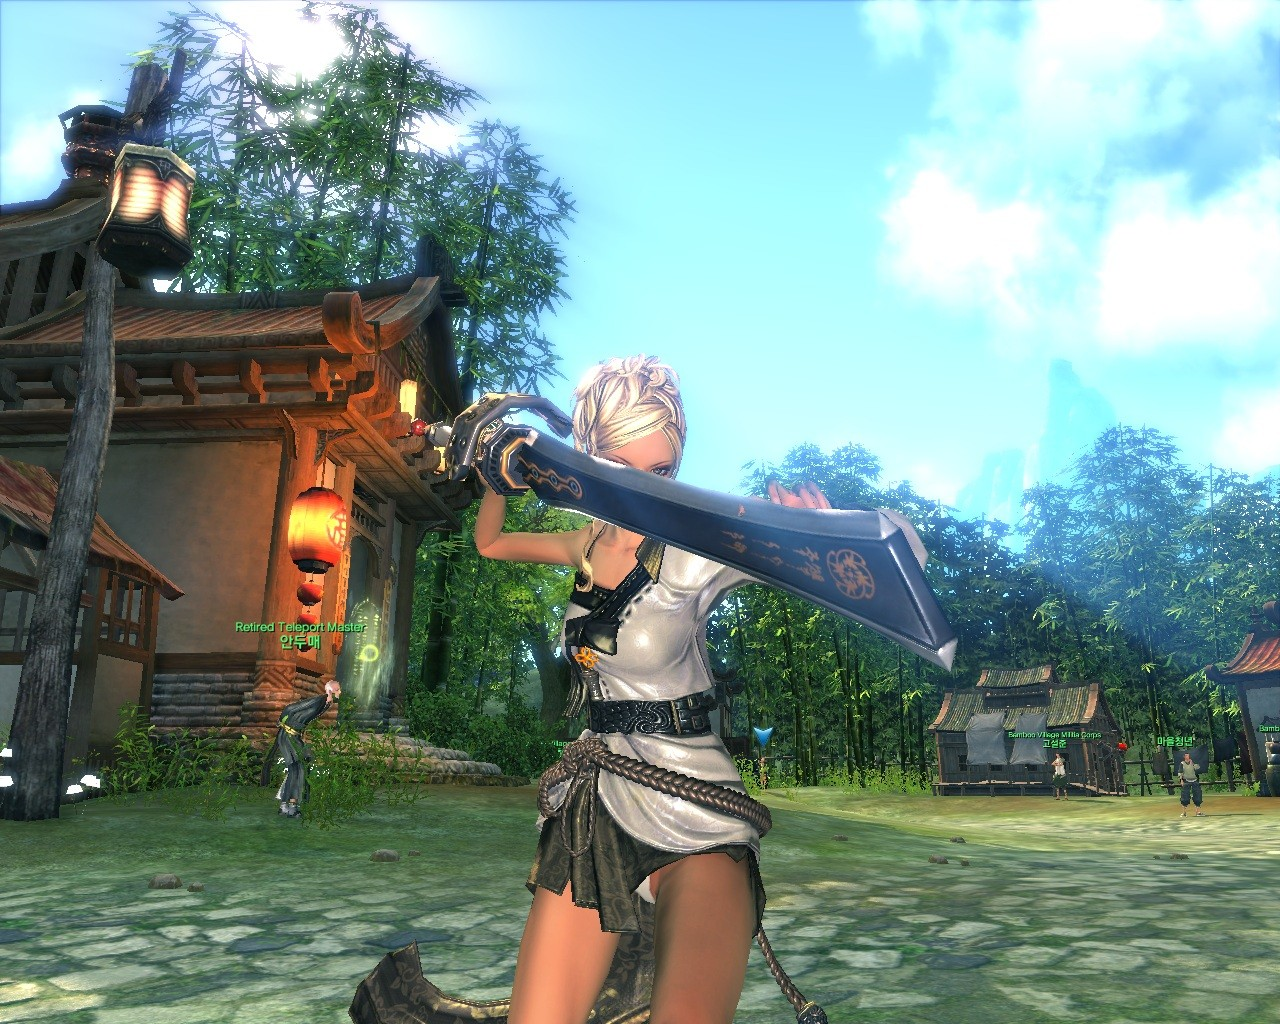 Blade & Soul - What .. do you see?